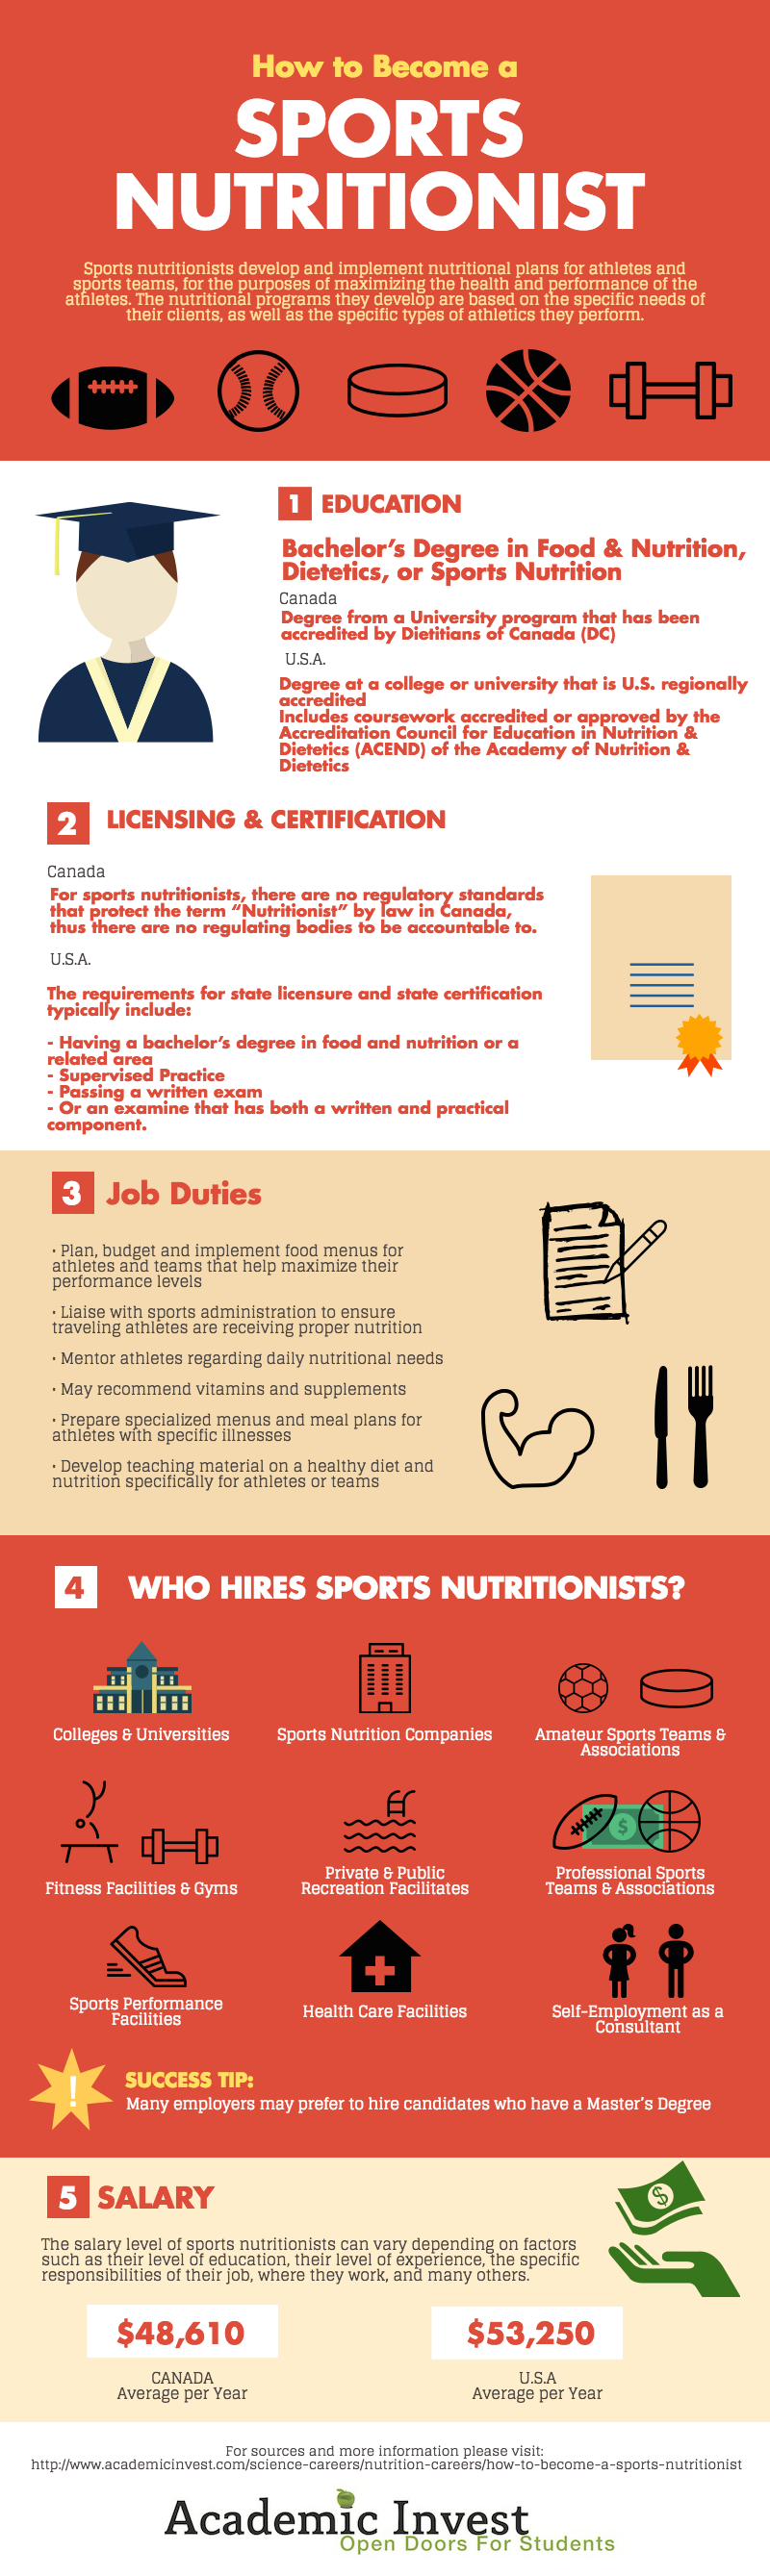 How To Become A Sports Nutritionist  Sports Nutritionist Career